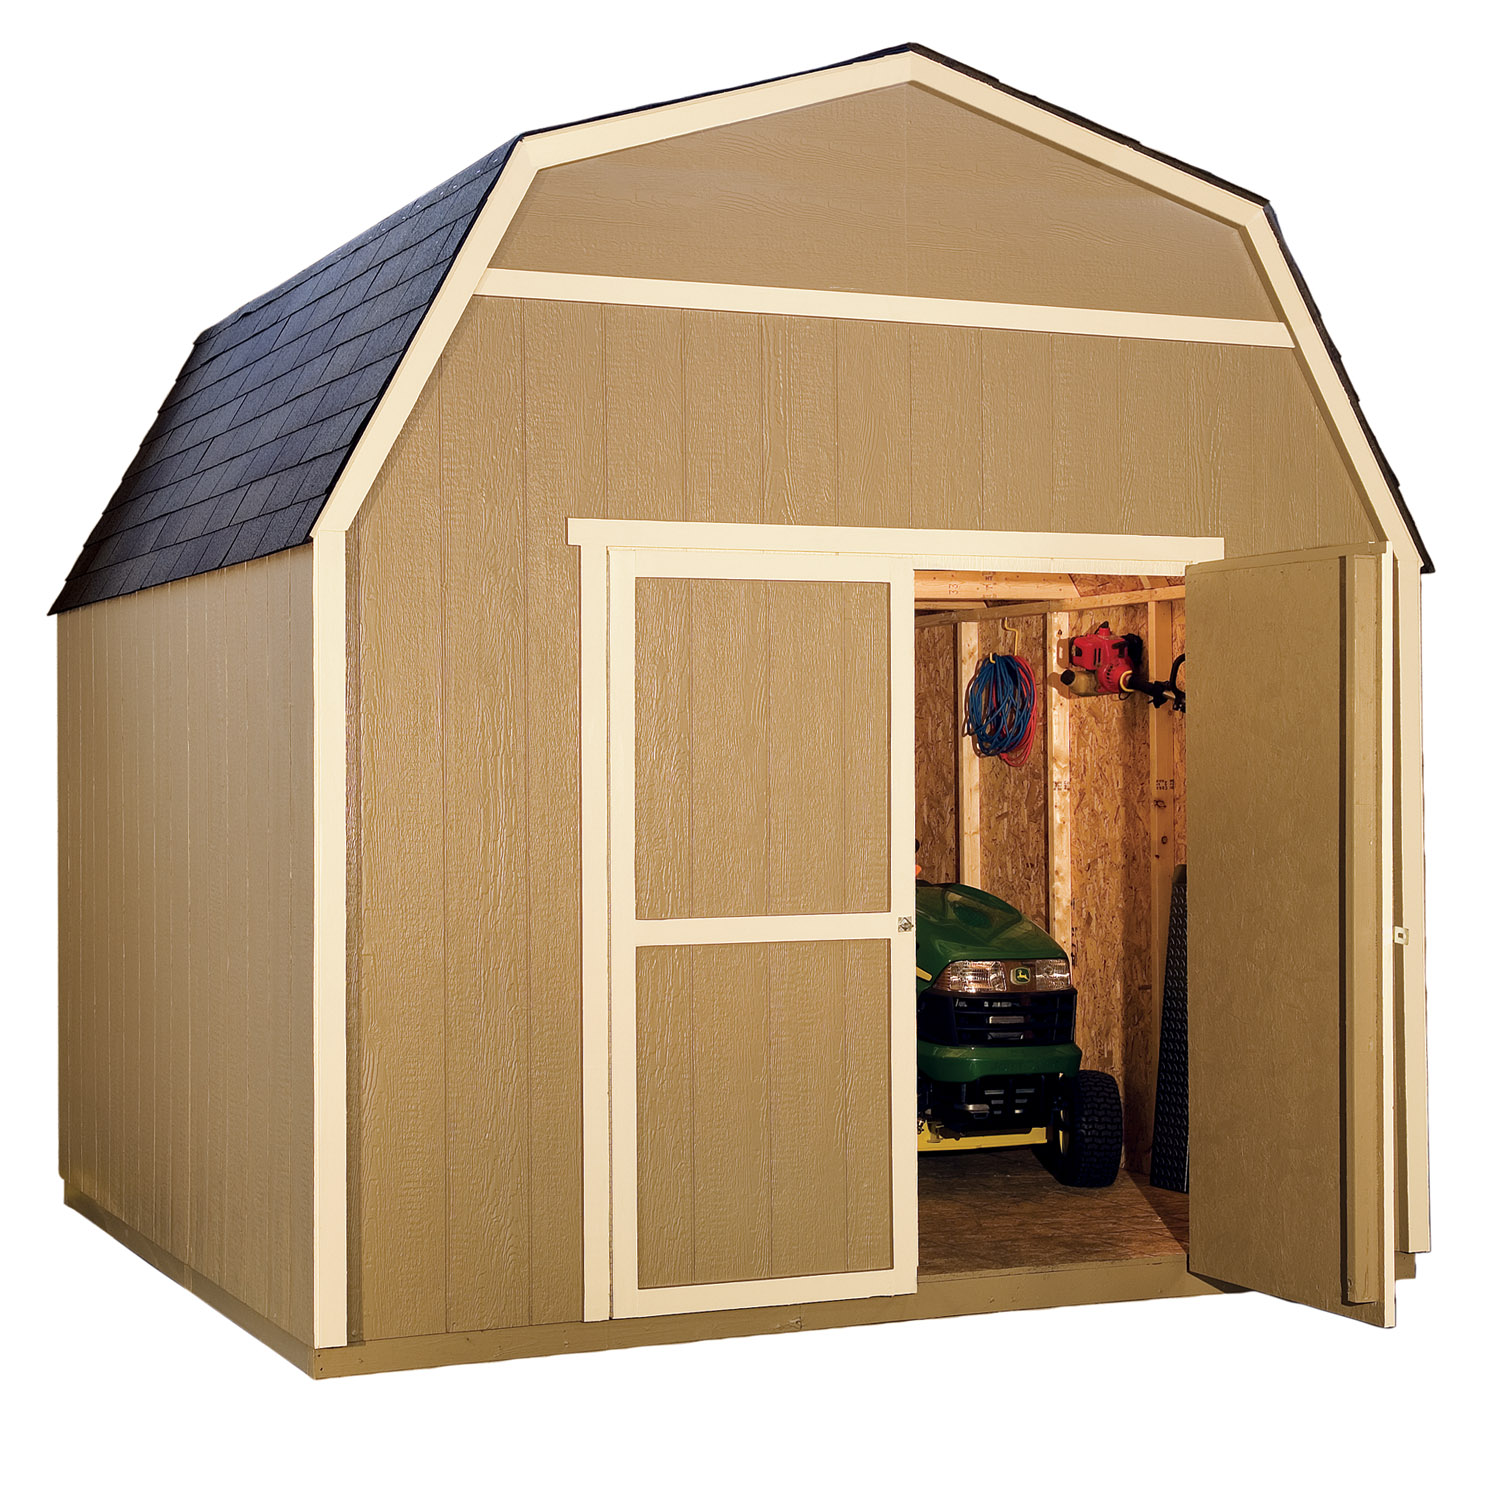 Menards Storage Shed Storage Shed Kit Diy Hardware Building Outdoor Wood Shed Doors Lowes